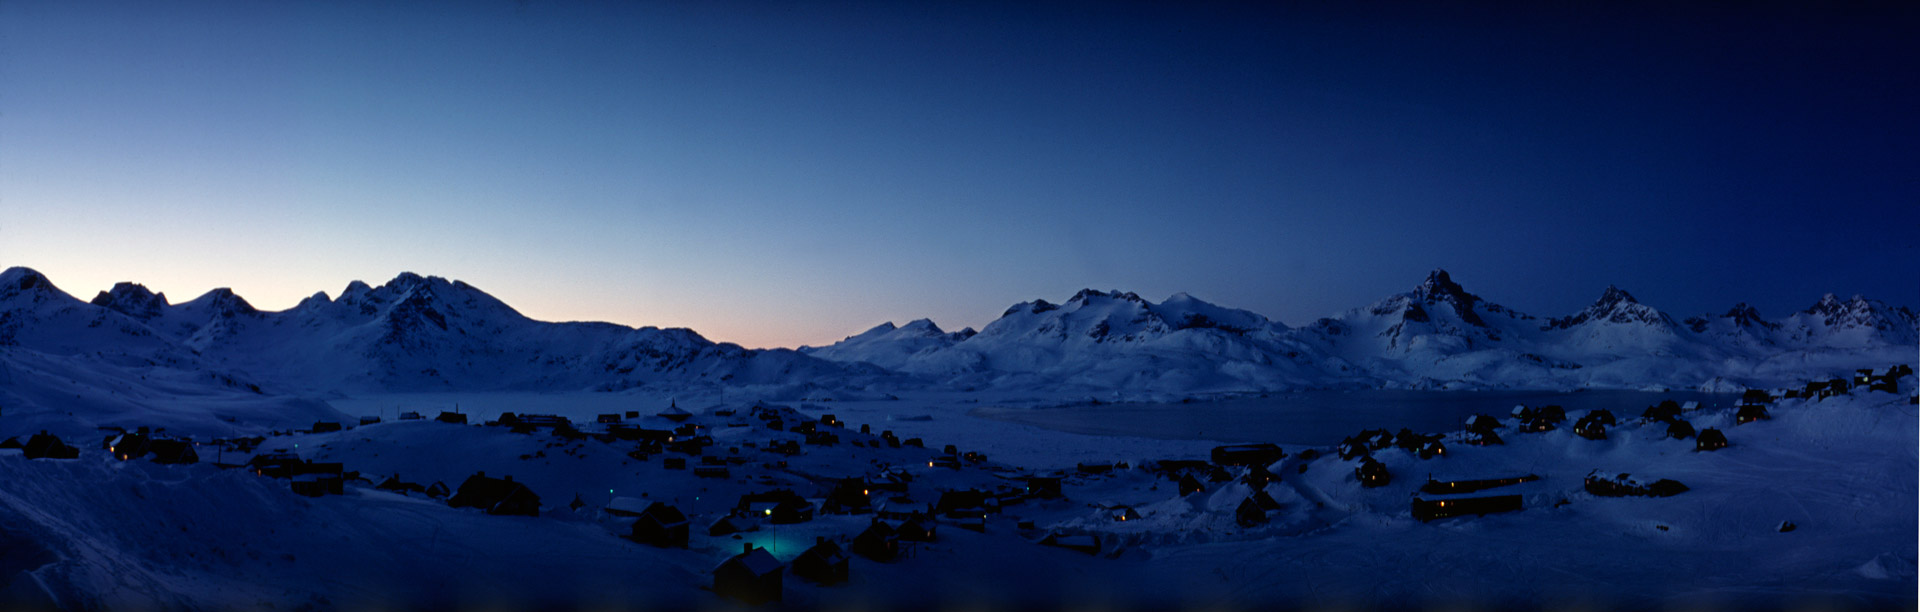 View over Ammassalik in Greenland at dusk